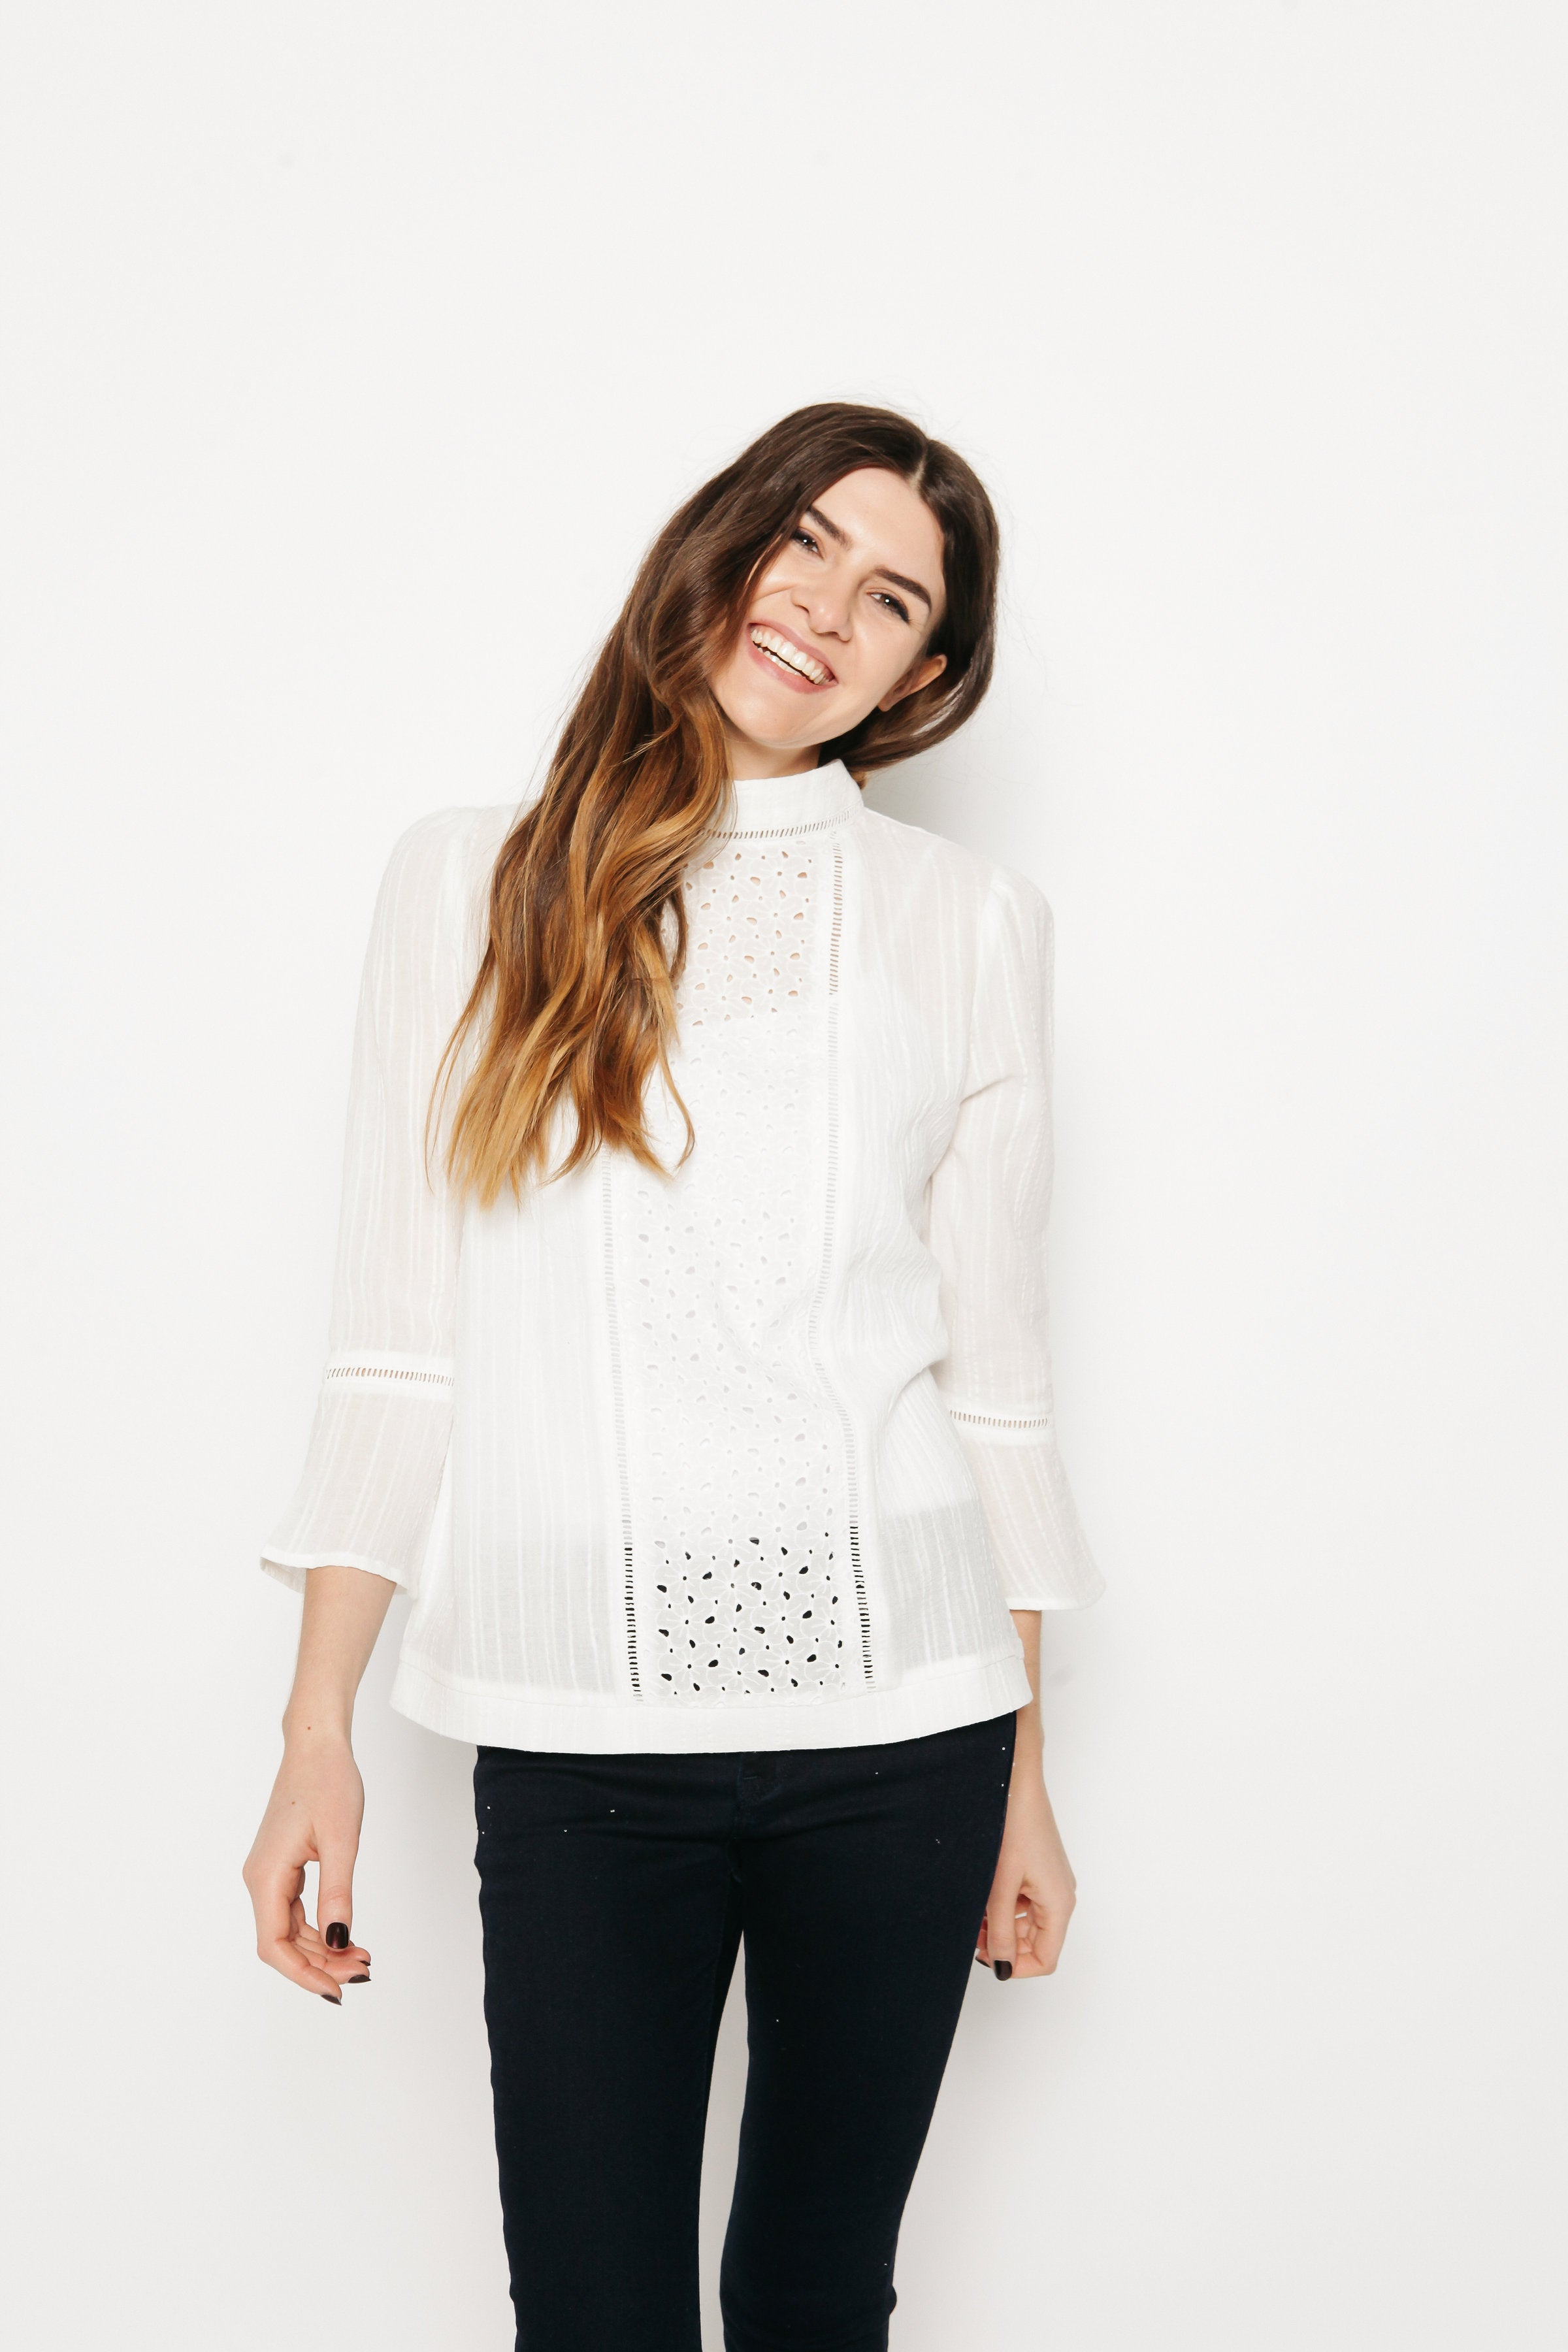 Mabel Blouse